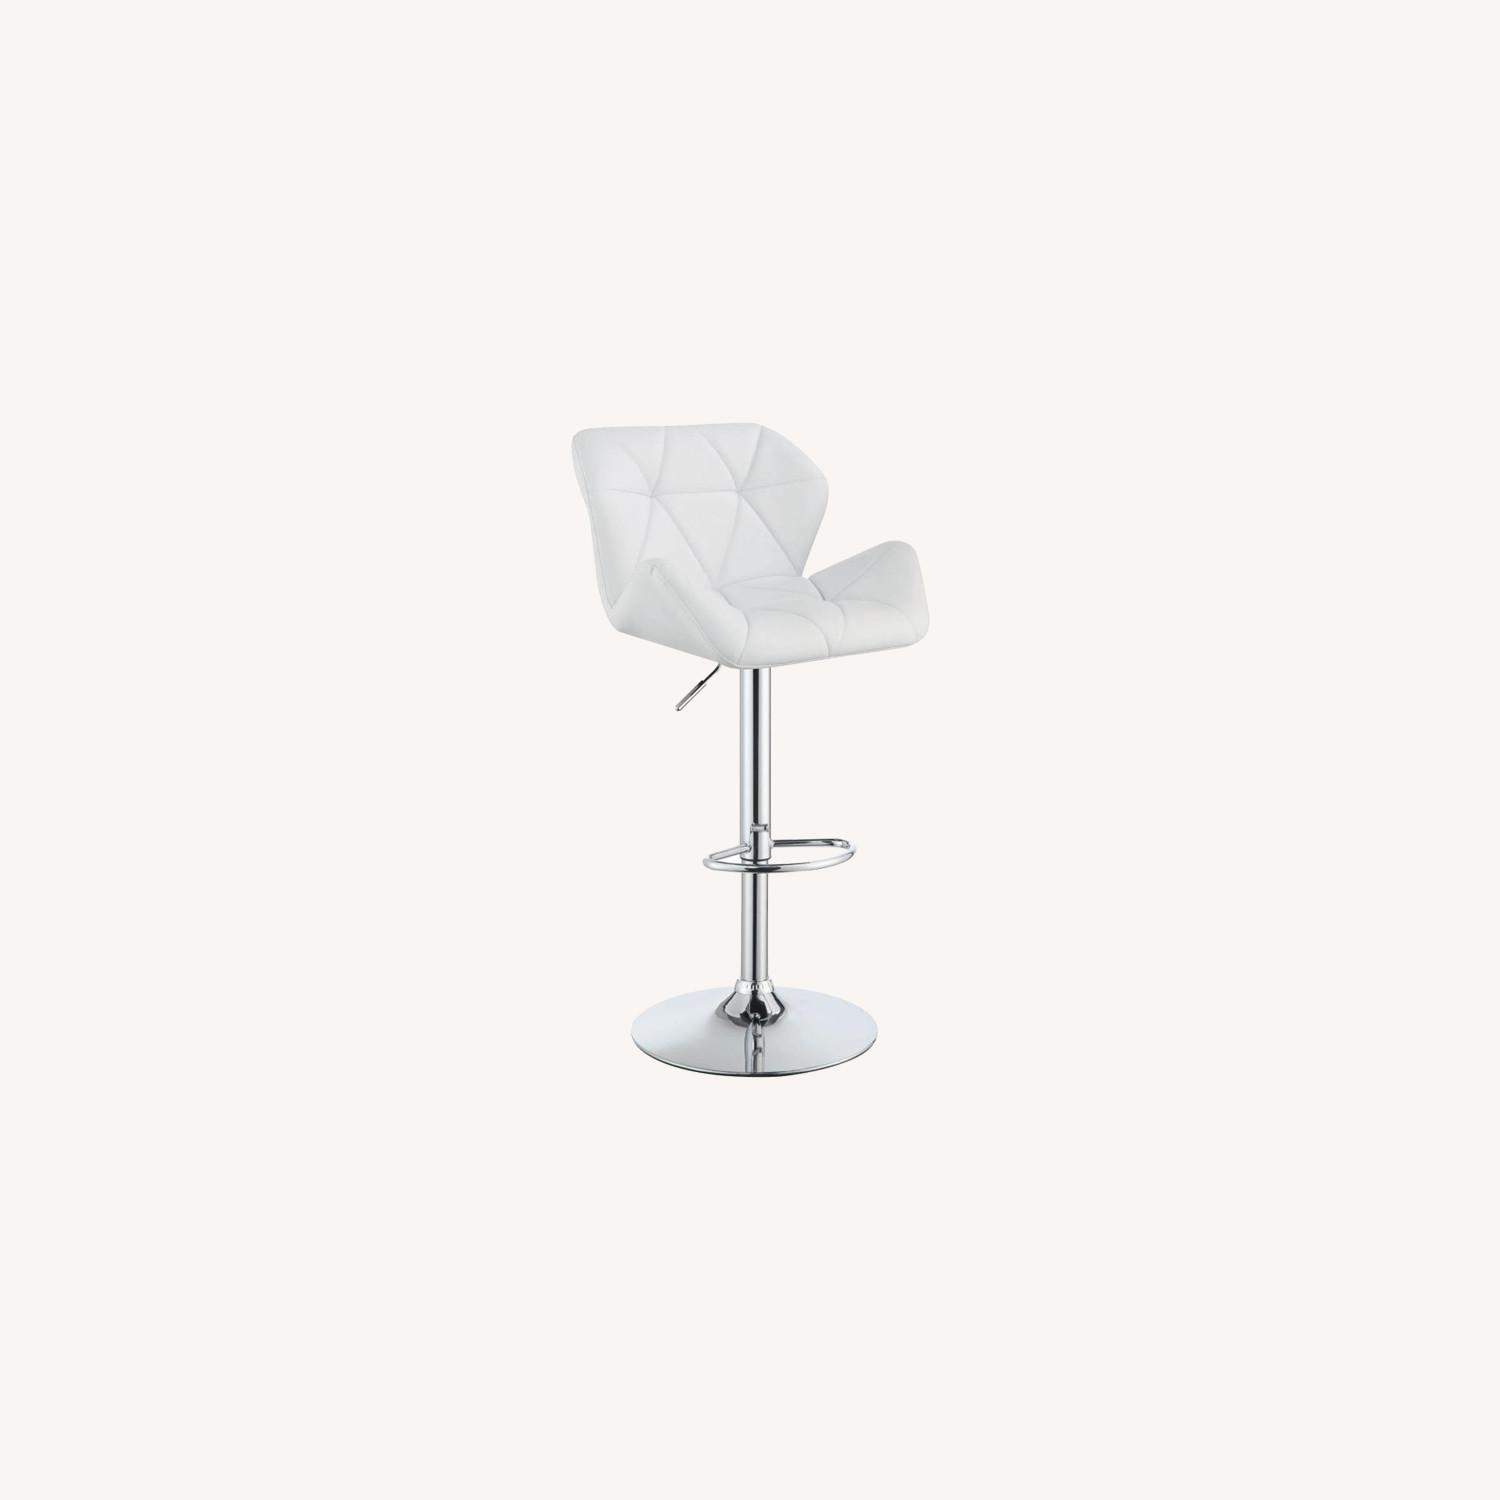 Adjustable Bar Stool In Tufted White Leatherette - image-4